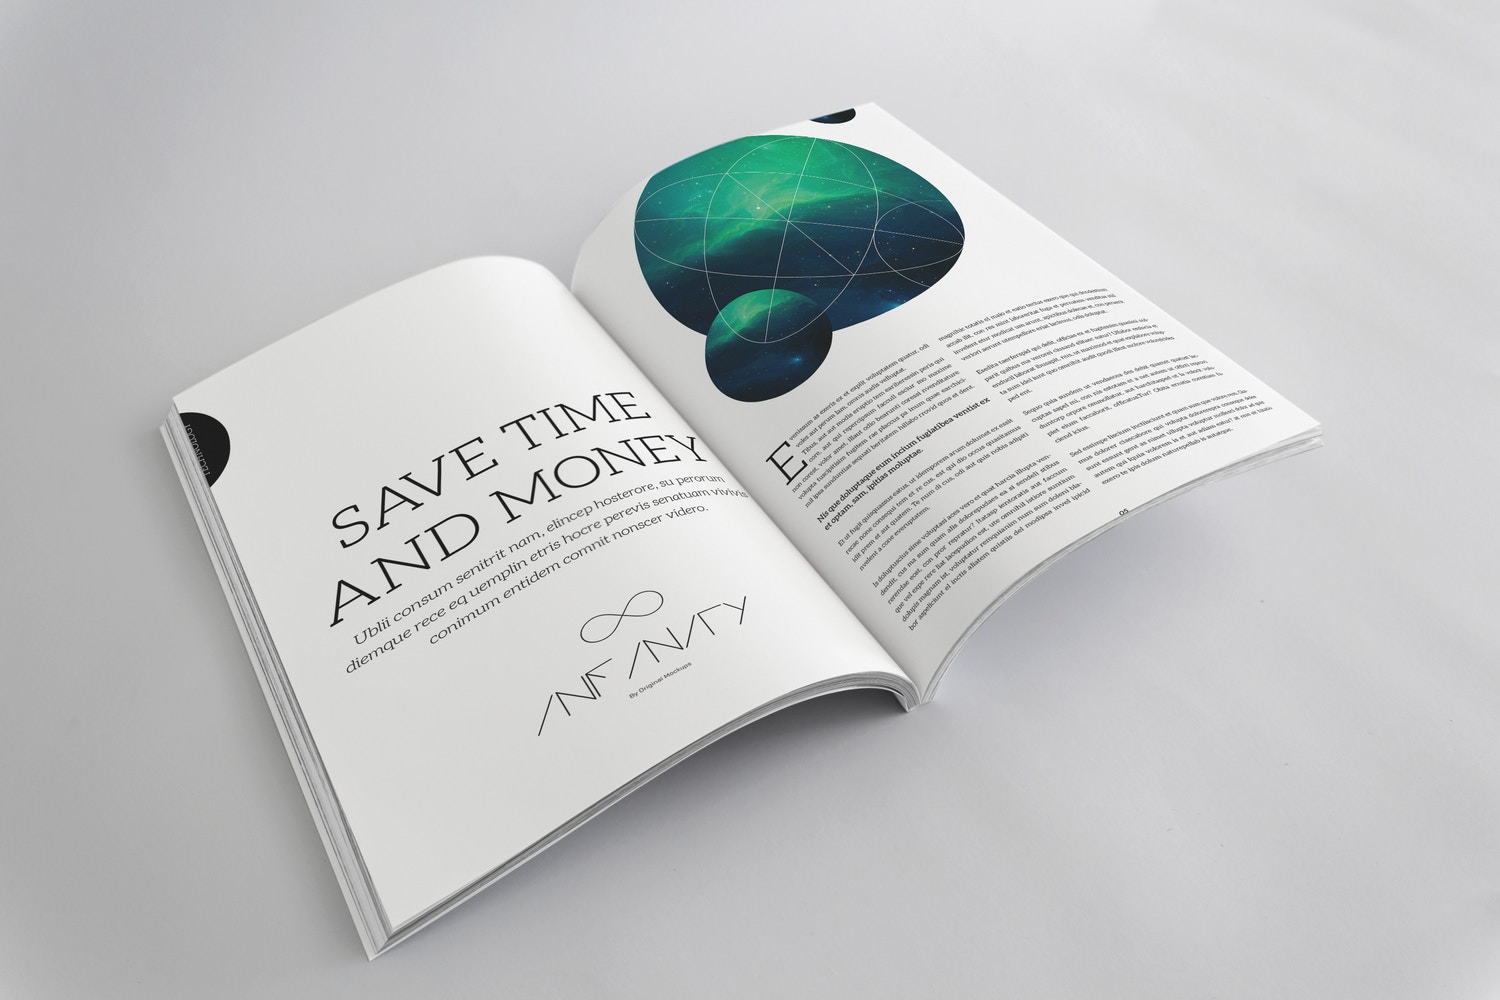 A4 Magazine Mockup for Spread Page by Original Mockups on Original Mockups